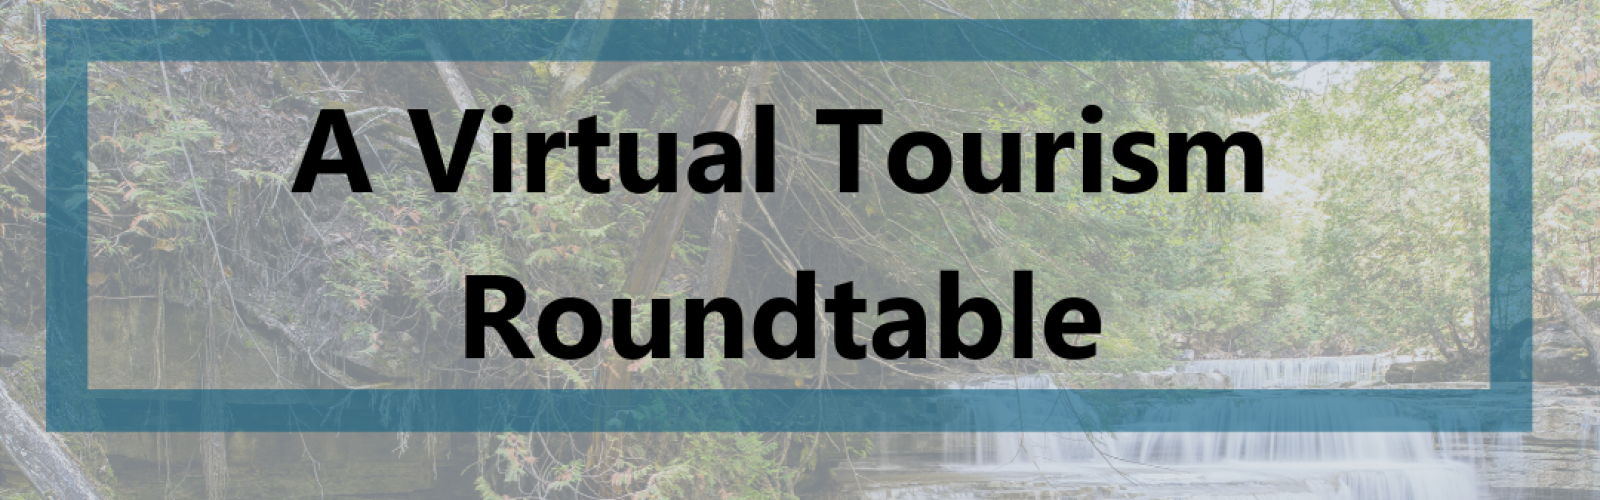 A Virtual Tourism Roundtable